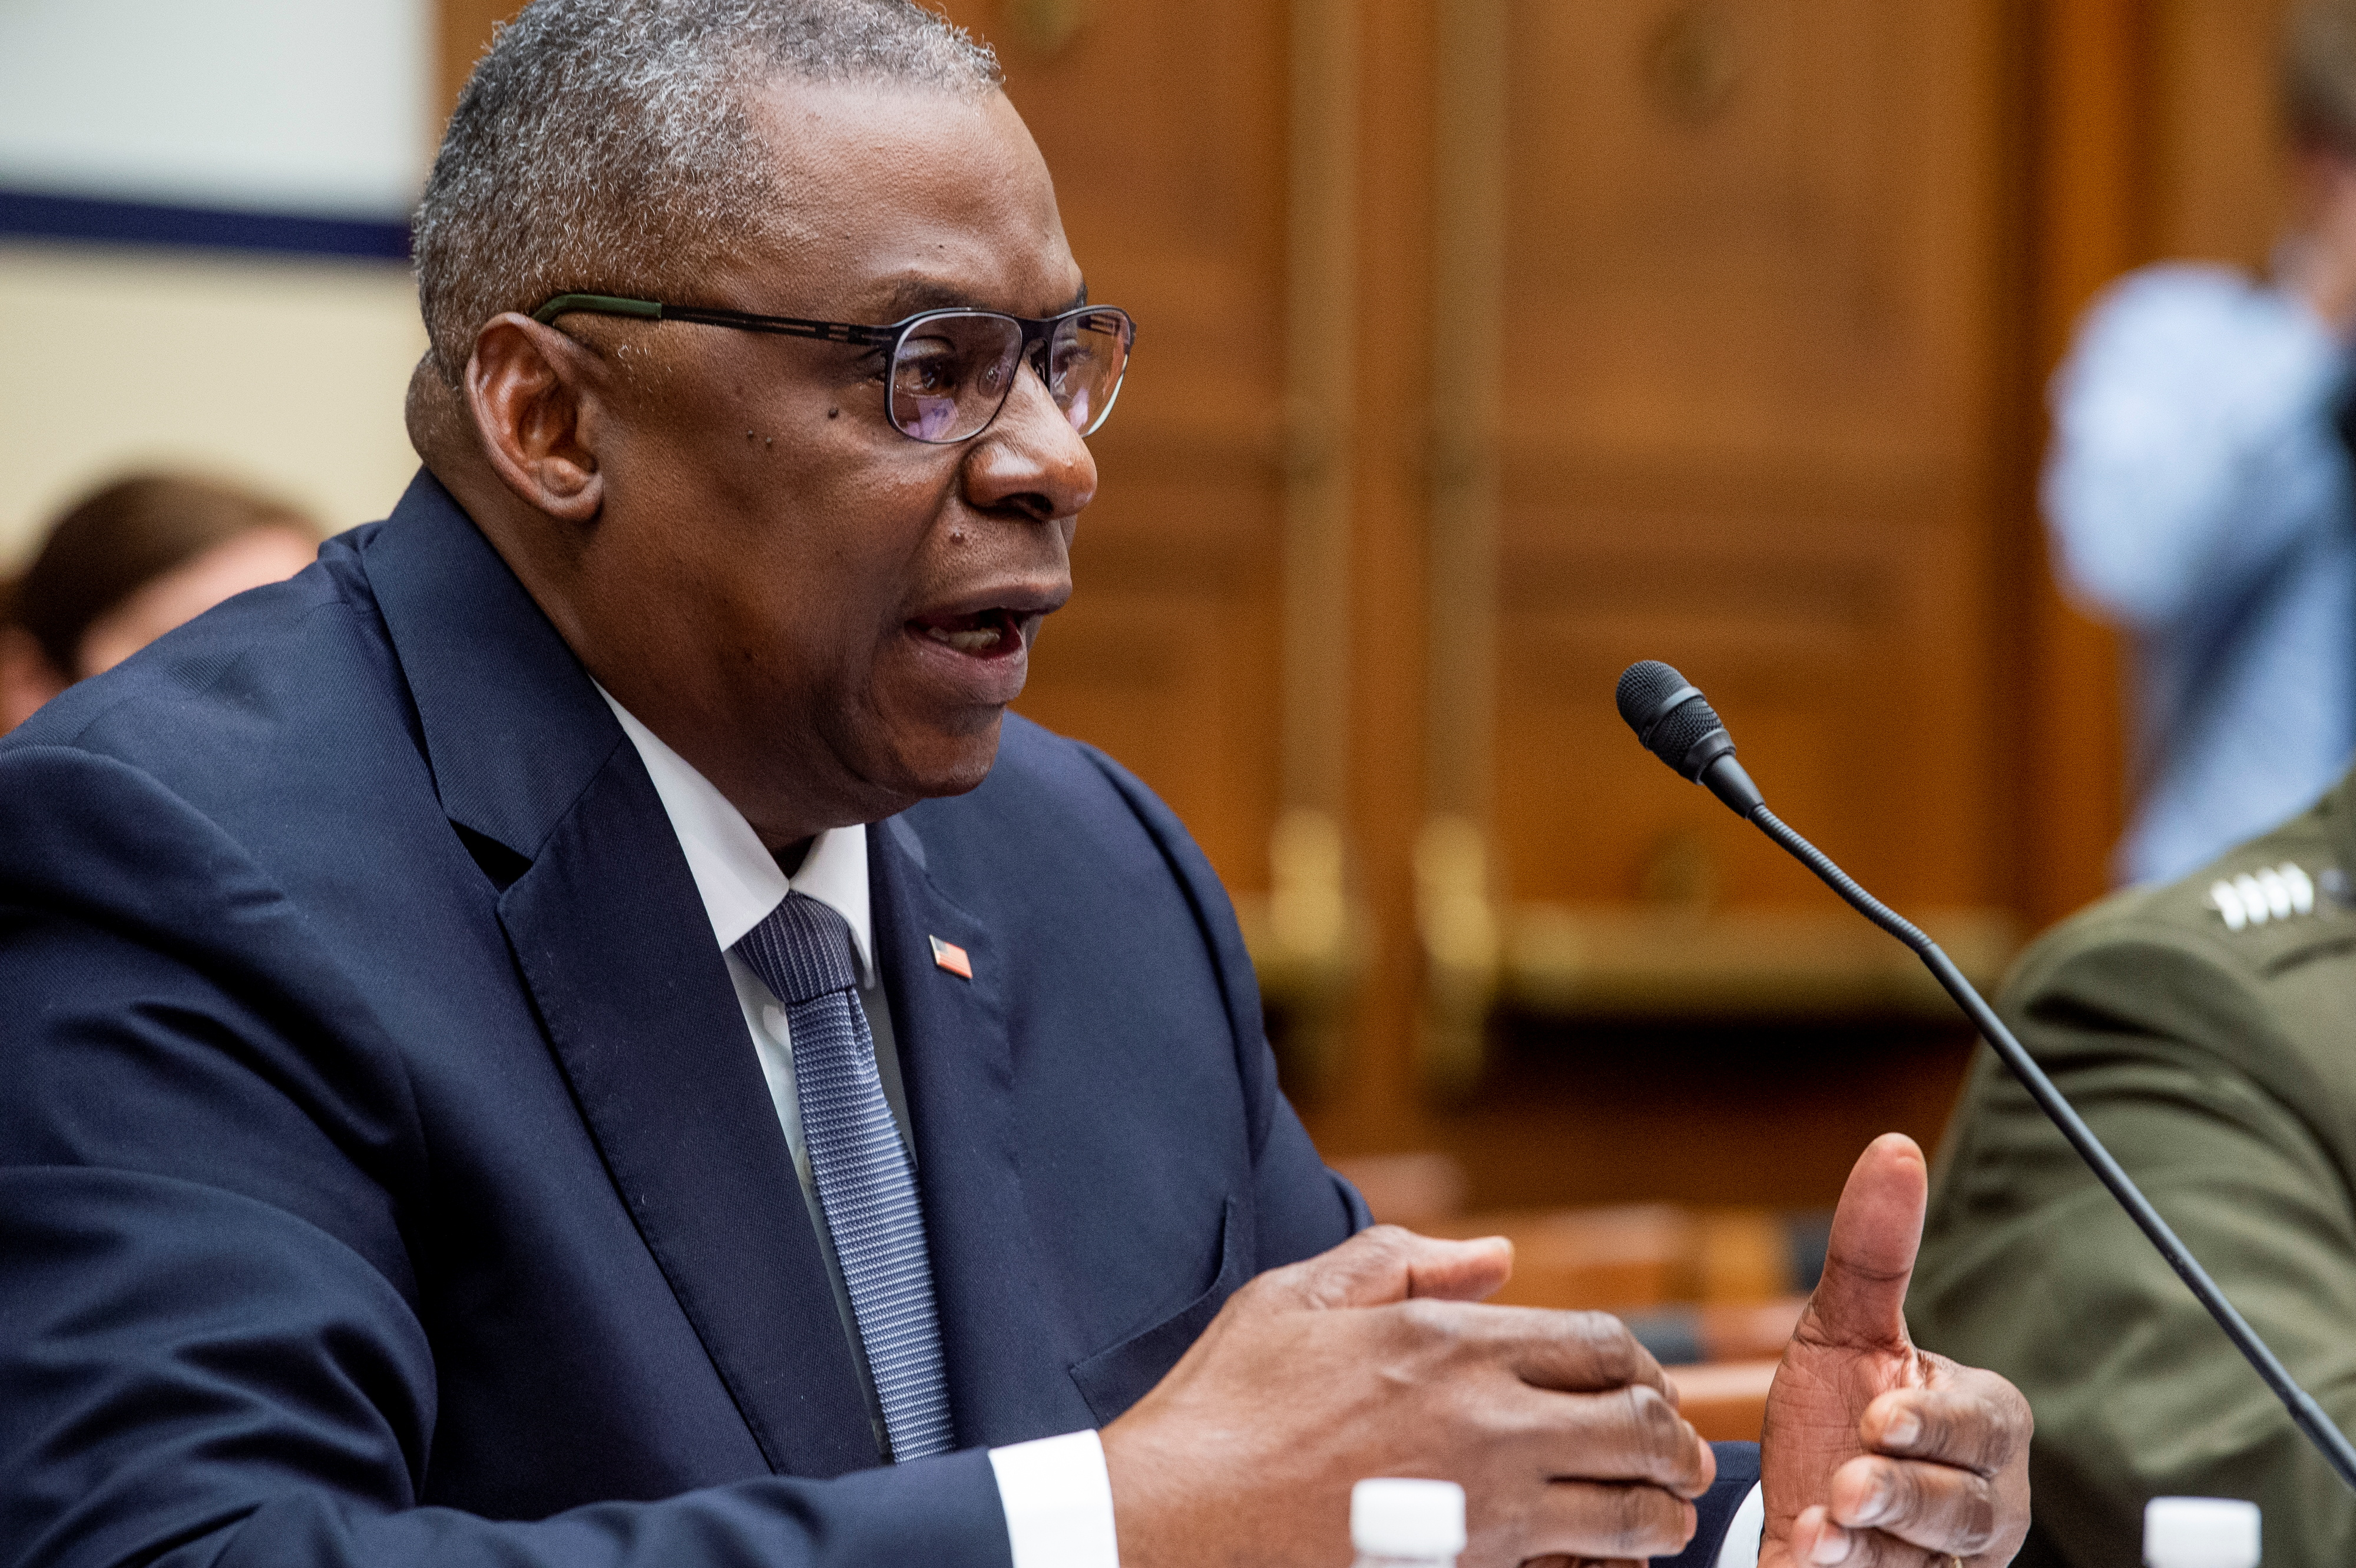 U.S. Secretary of Defense Lloyd Austin responds to questions during a House Armed Services Committee hearing on